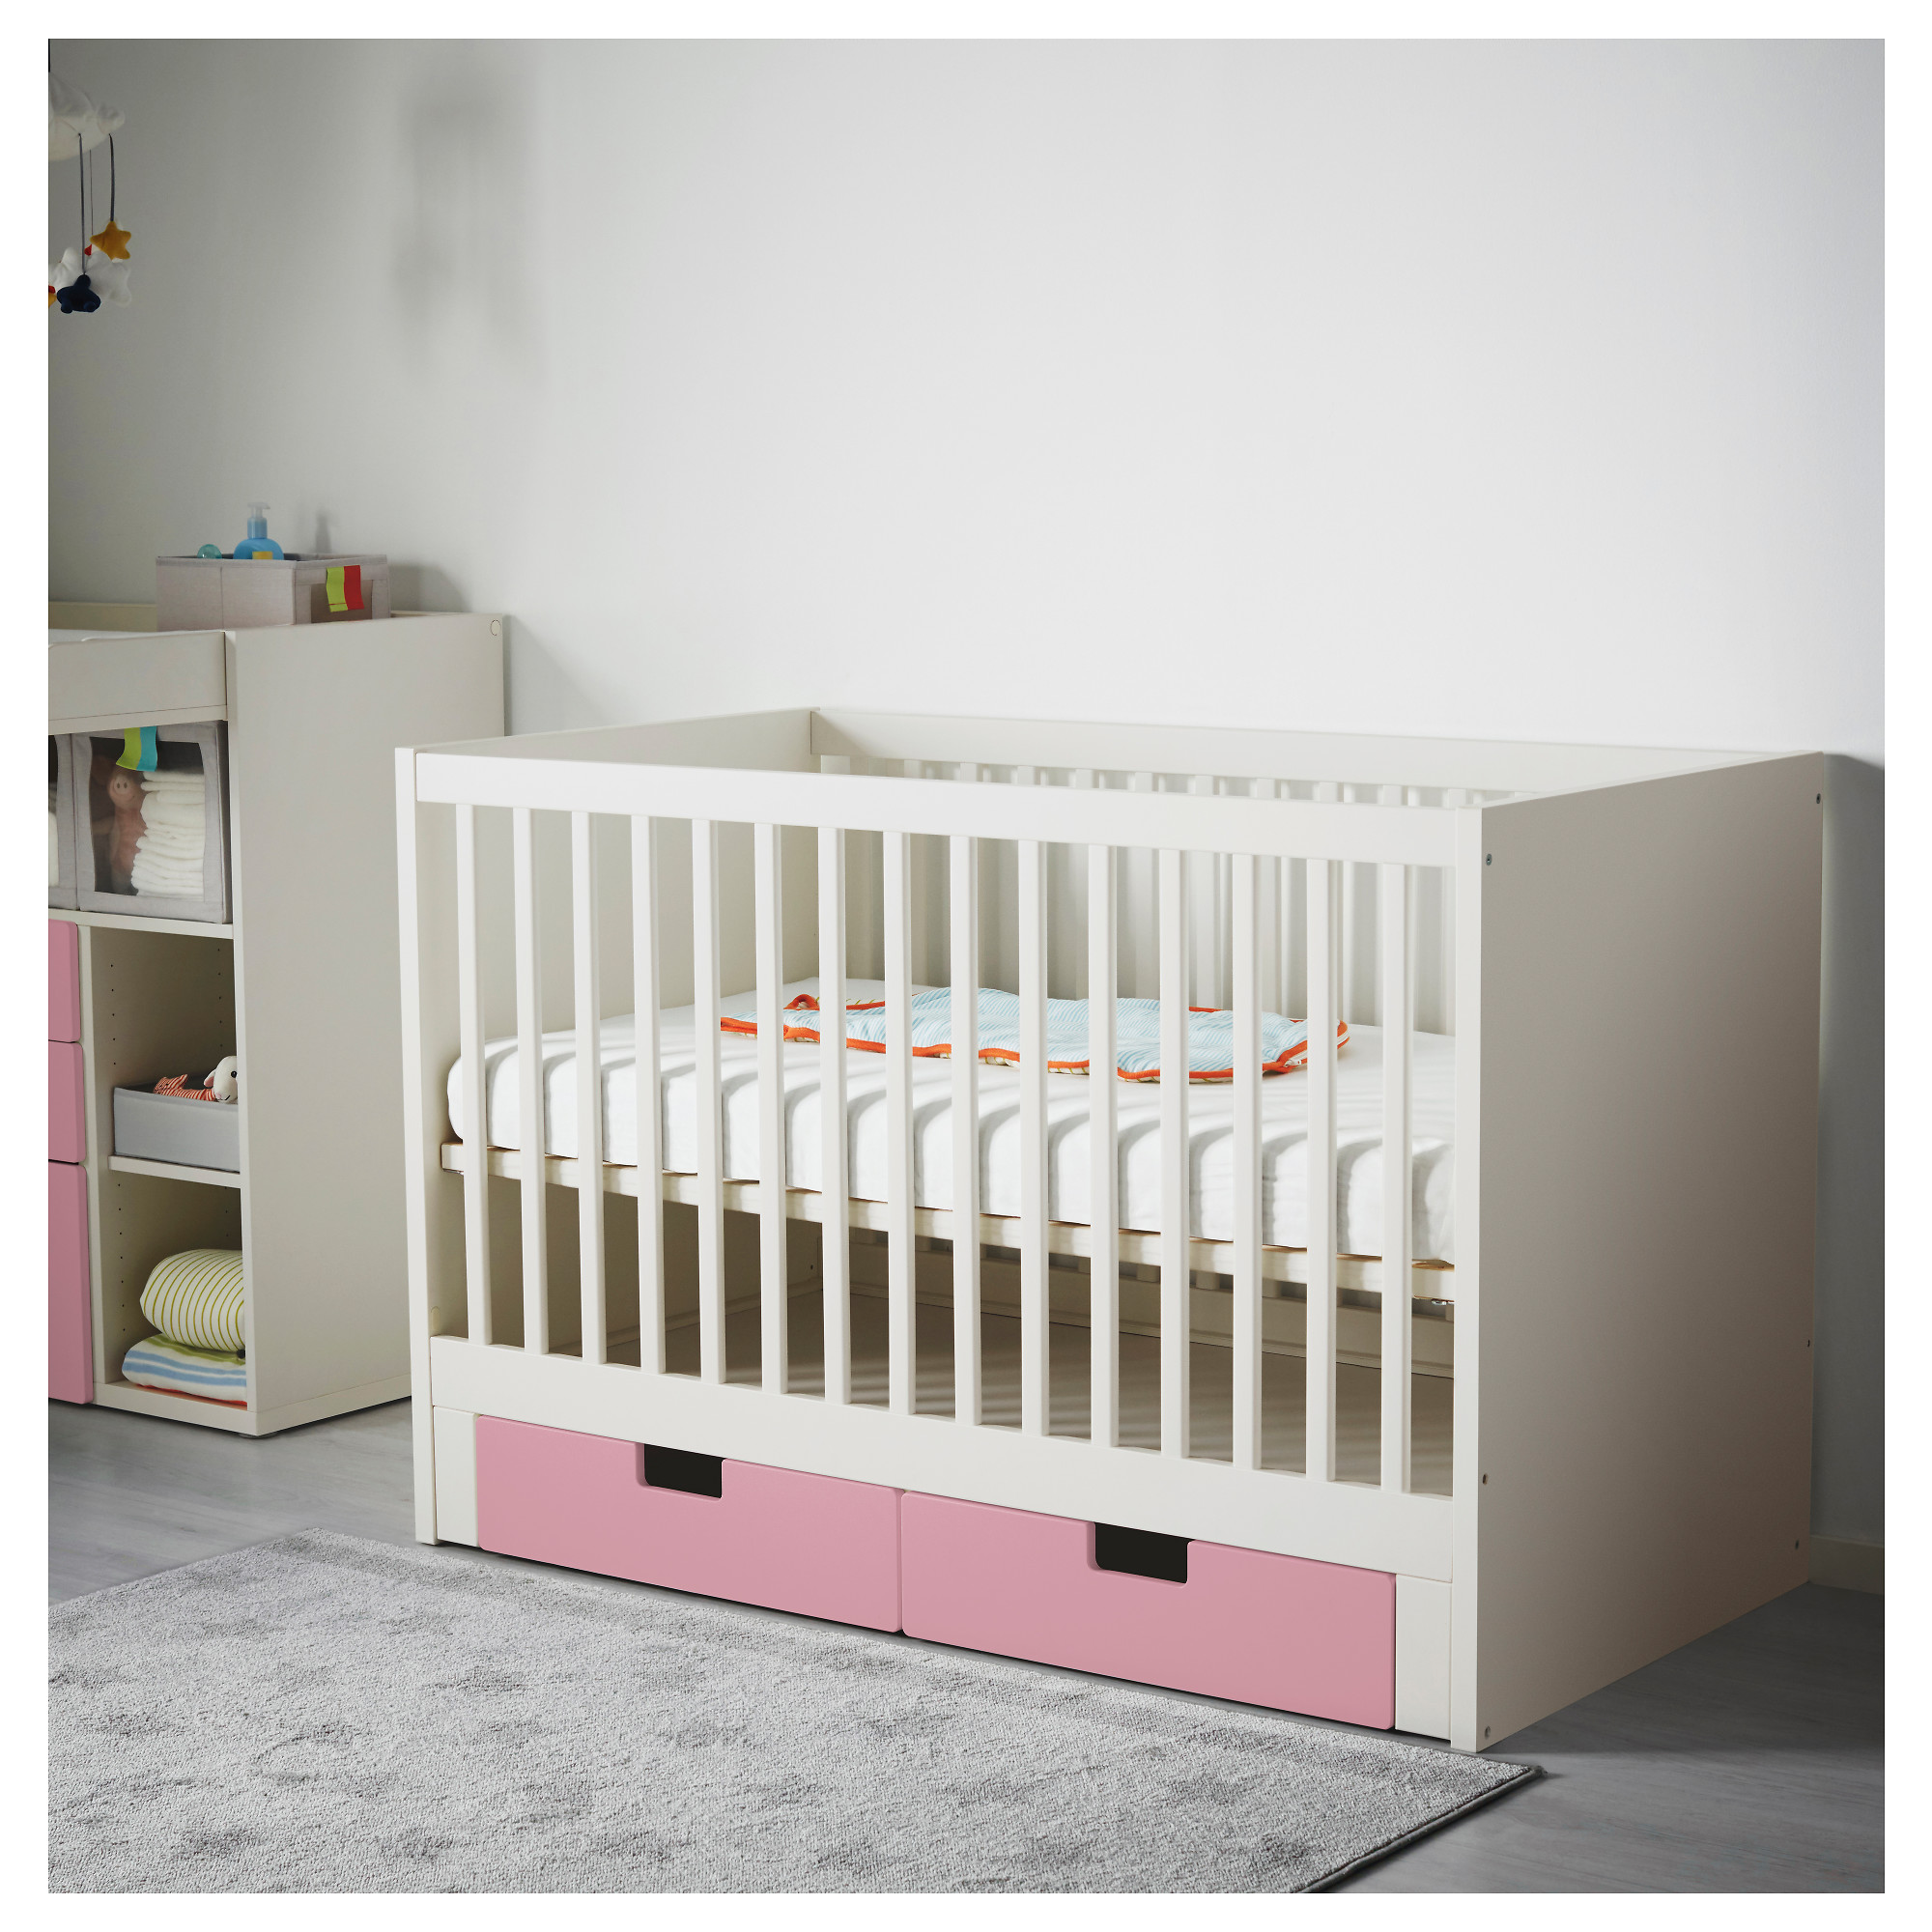 Baby cribs york region - Baby Cribs York Region 15